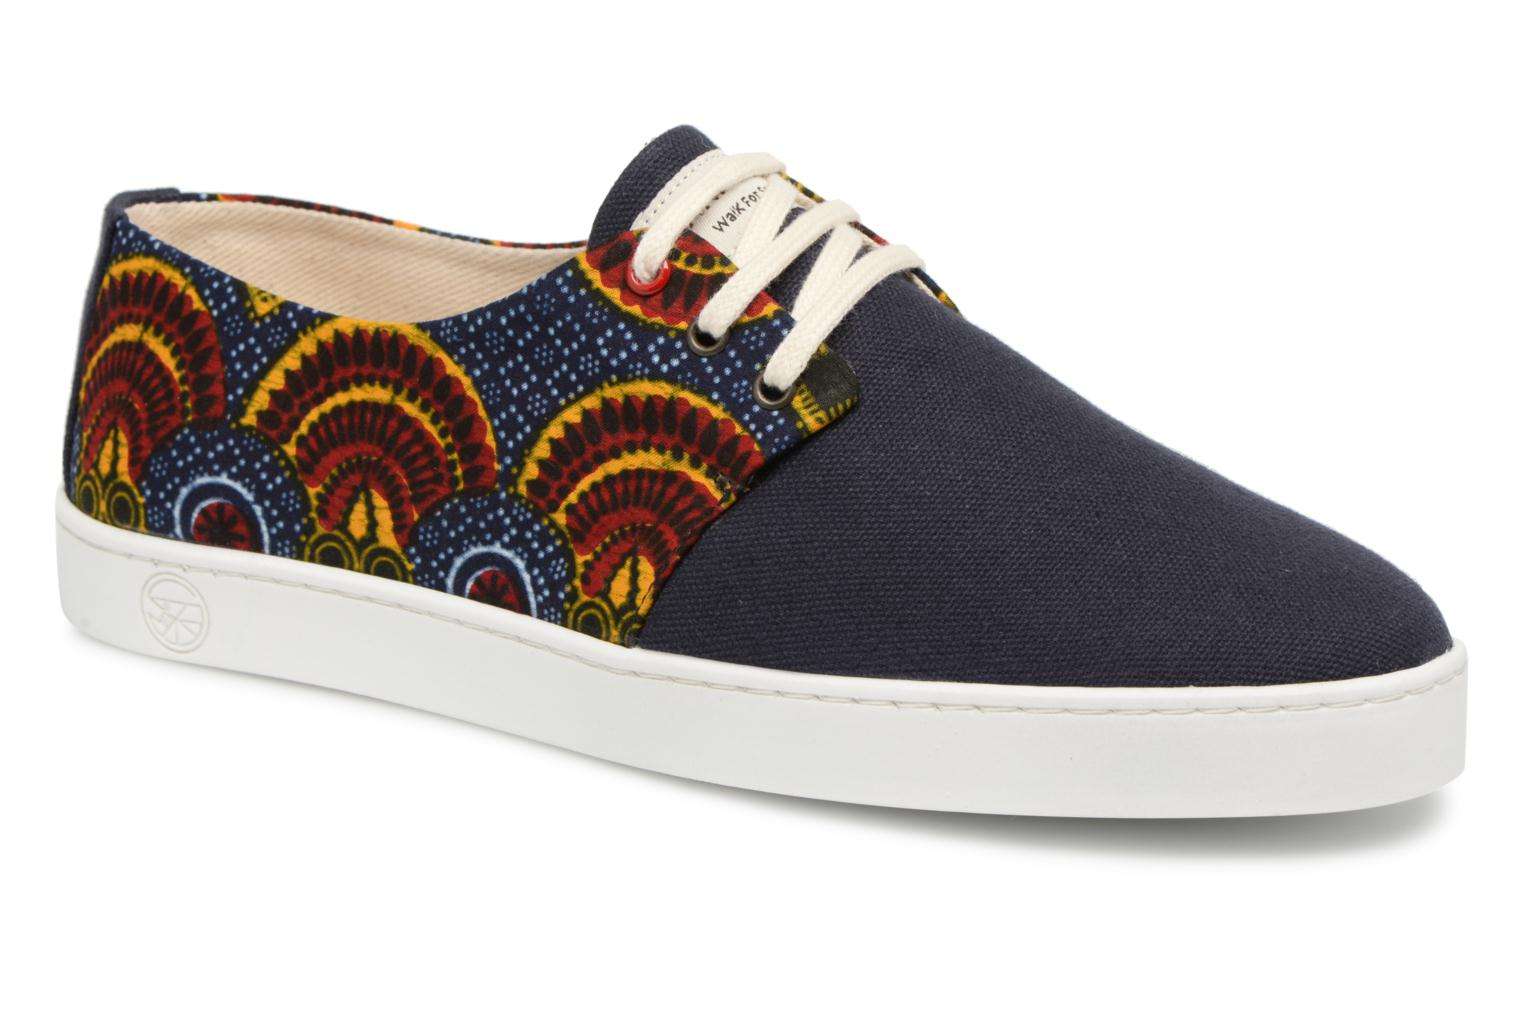 Baskets Panafrica Alizé Canvas Multicolore vue détail/paire